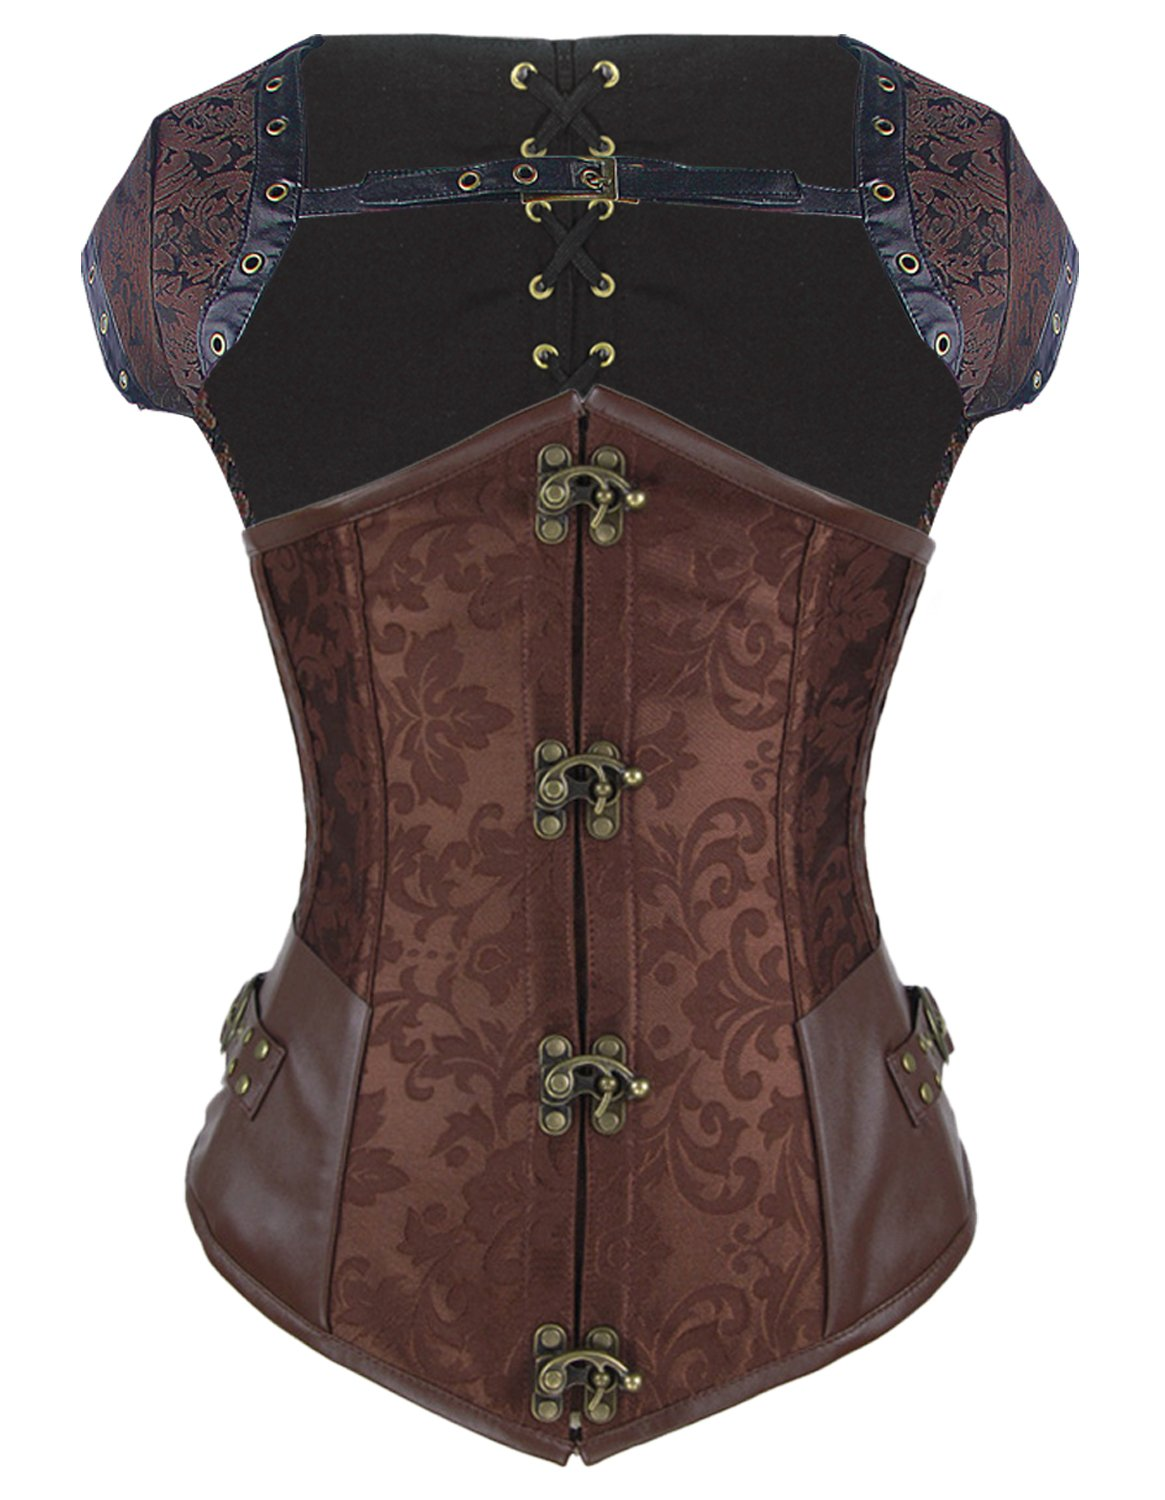 Burvogue Women's Brocade Steampunk Overbust Corset with Jacket 6T-CANT-3SFM